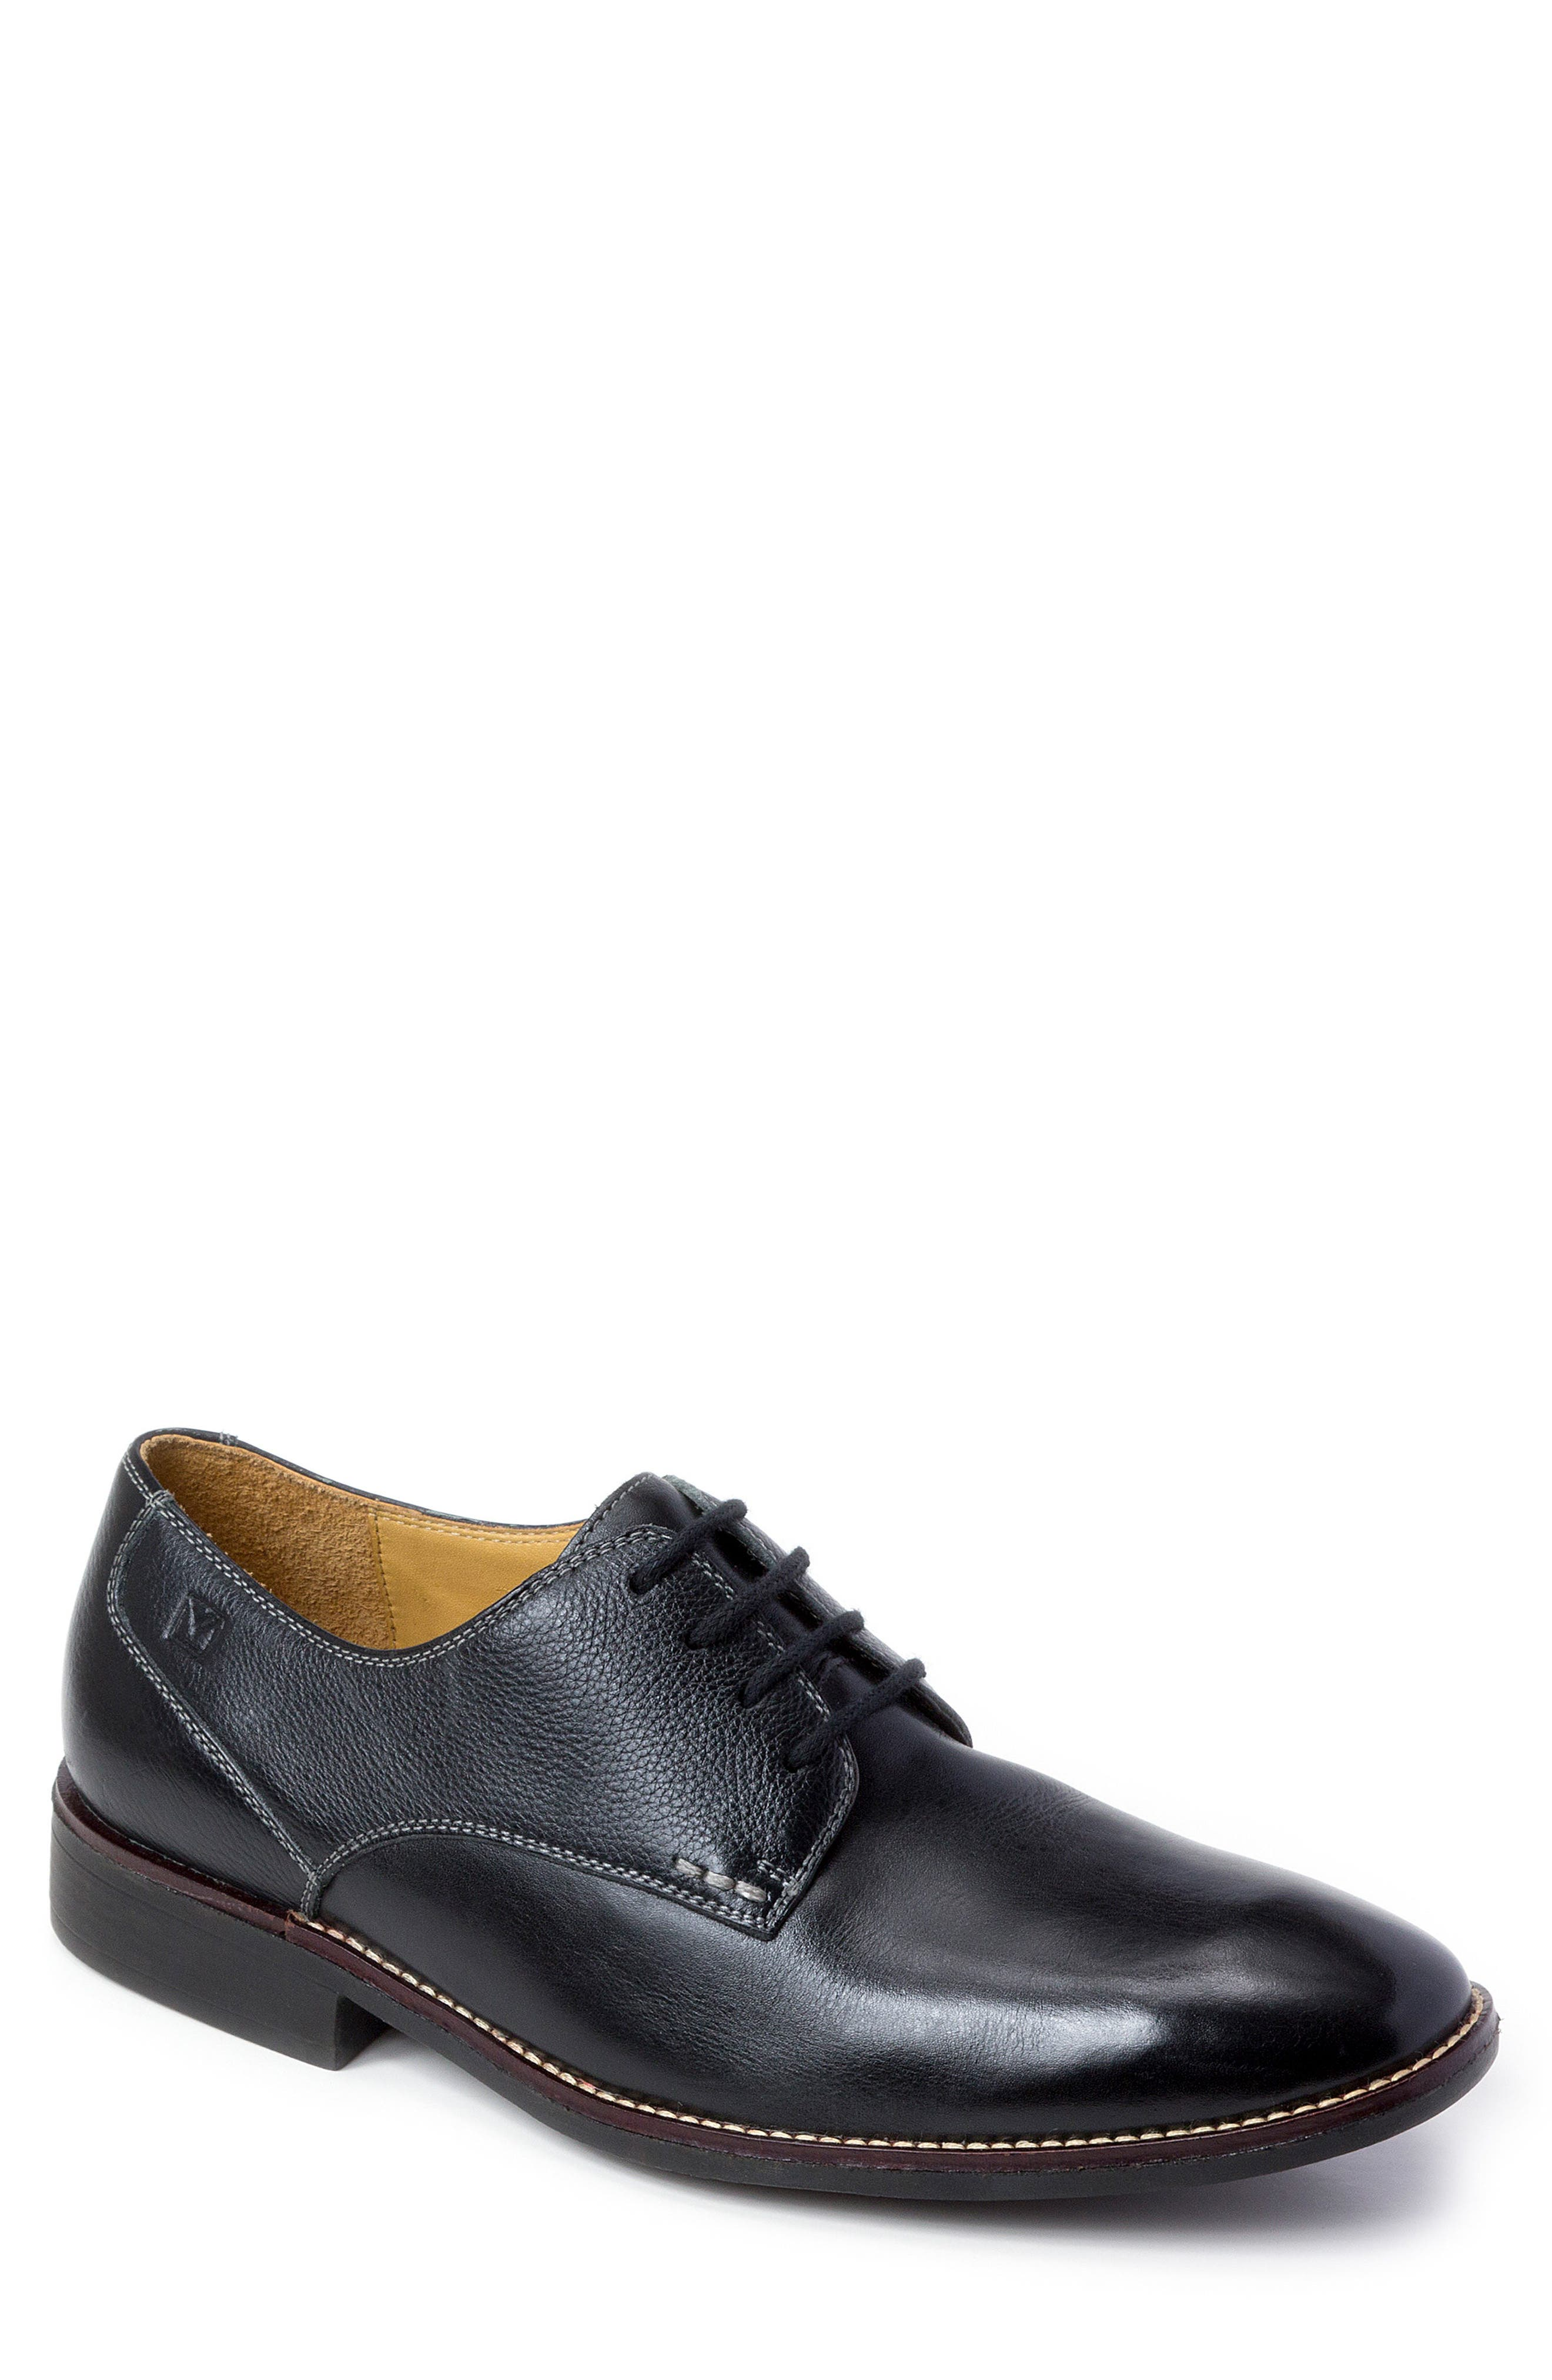 Sandro Moscoloni 'Olsen' Plain Toe Derby (Men)